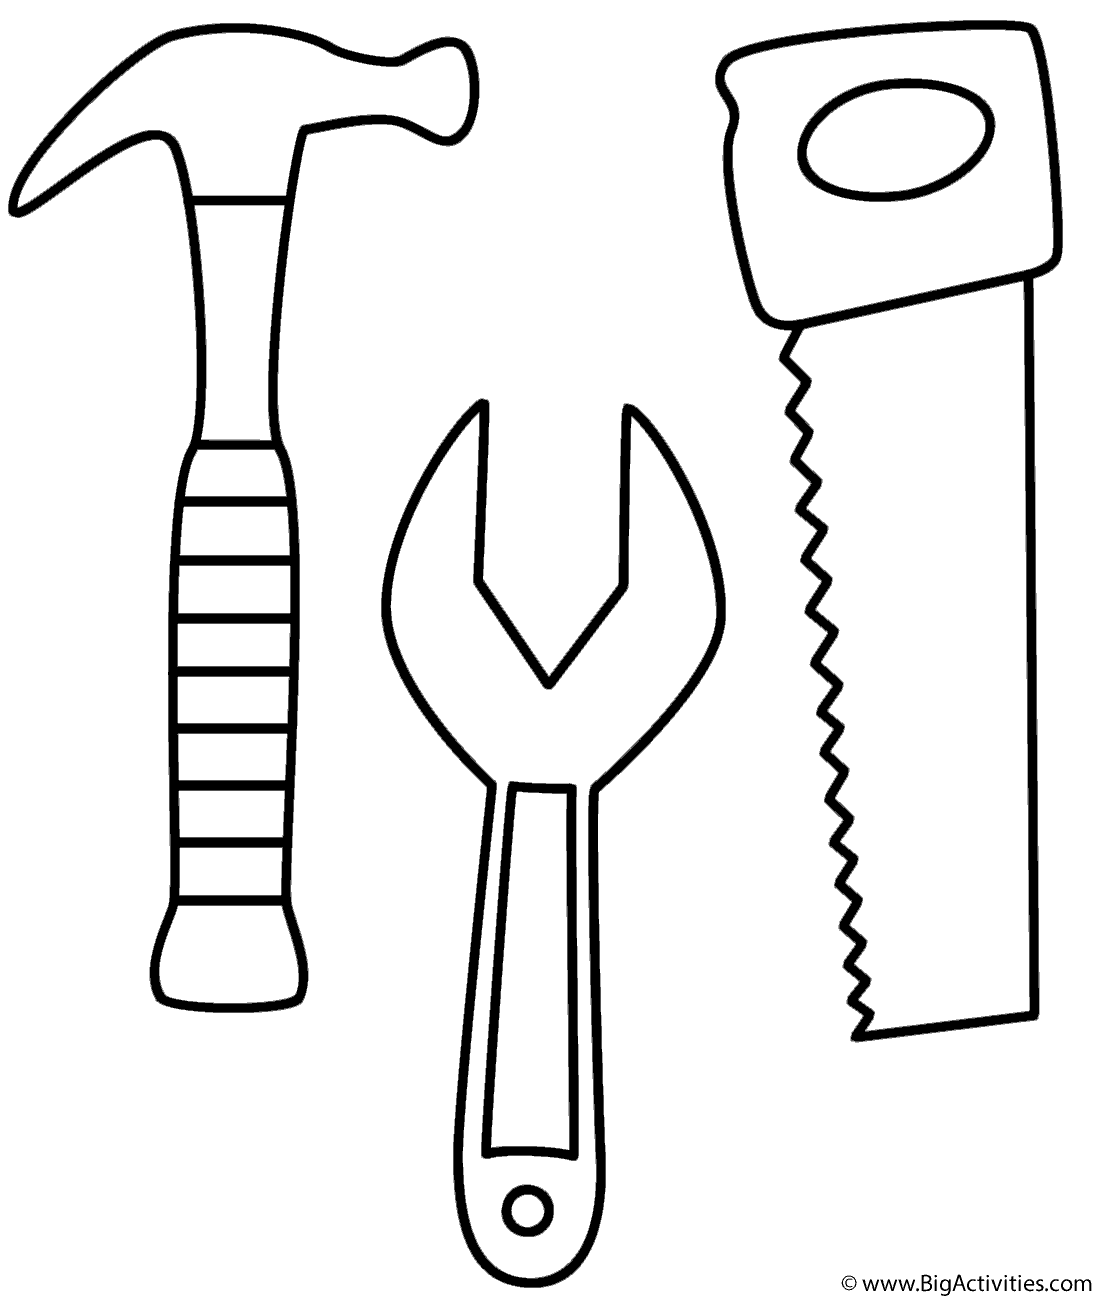 Hammer, Saw and Wrench - Coloring Page (Tools)